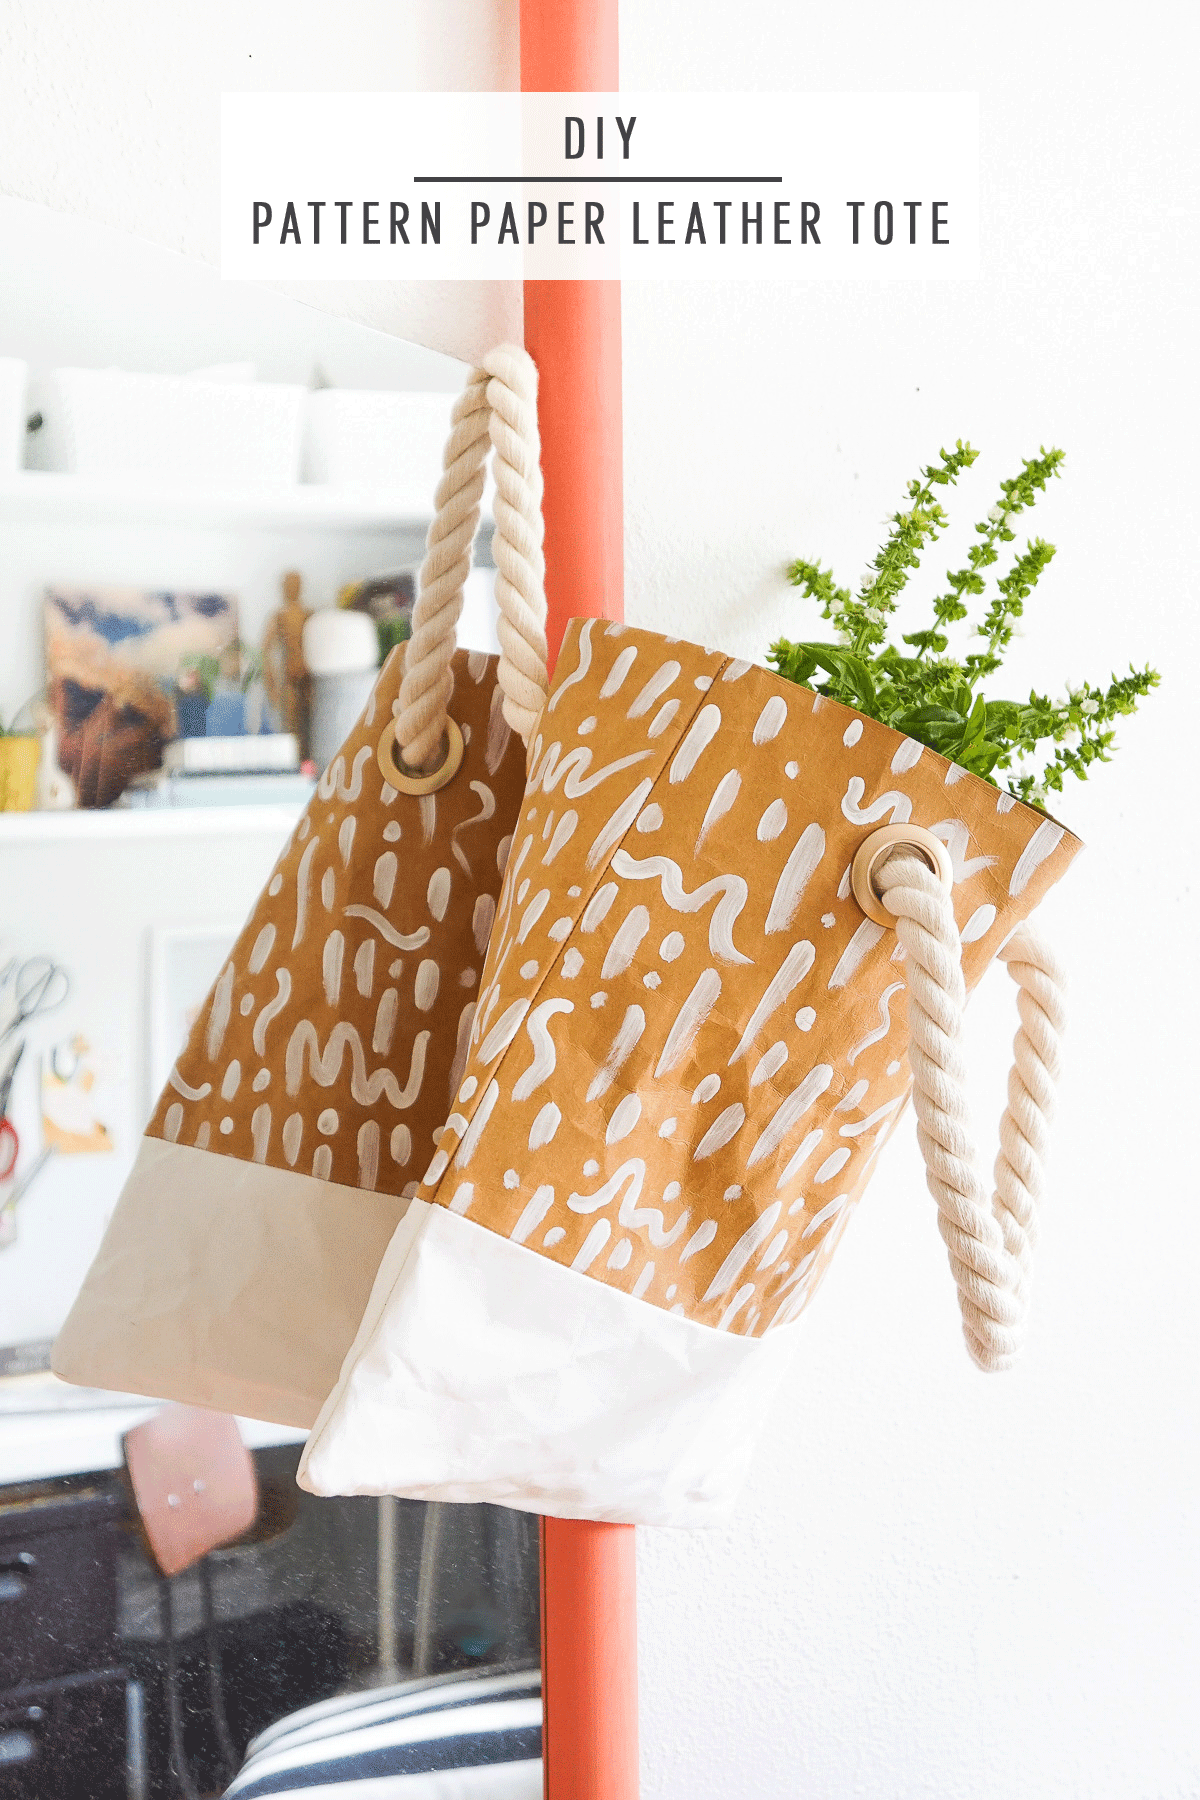 DIY Pattern Paper Leather Tote by Ashley Rose of Sugar & Cloth, a top lifestyle blog in Houston, Texas